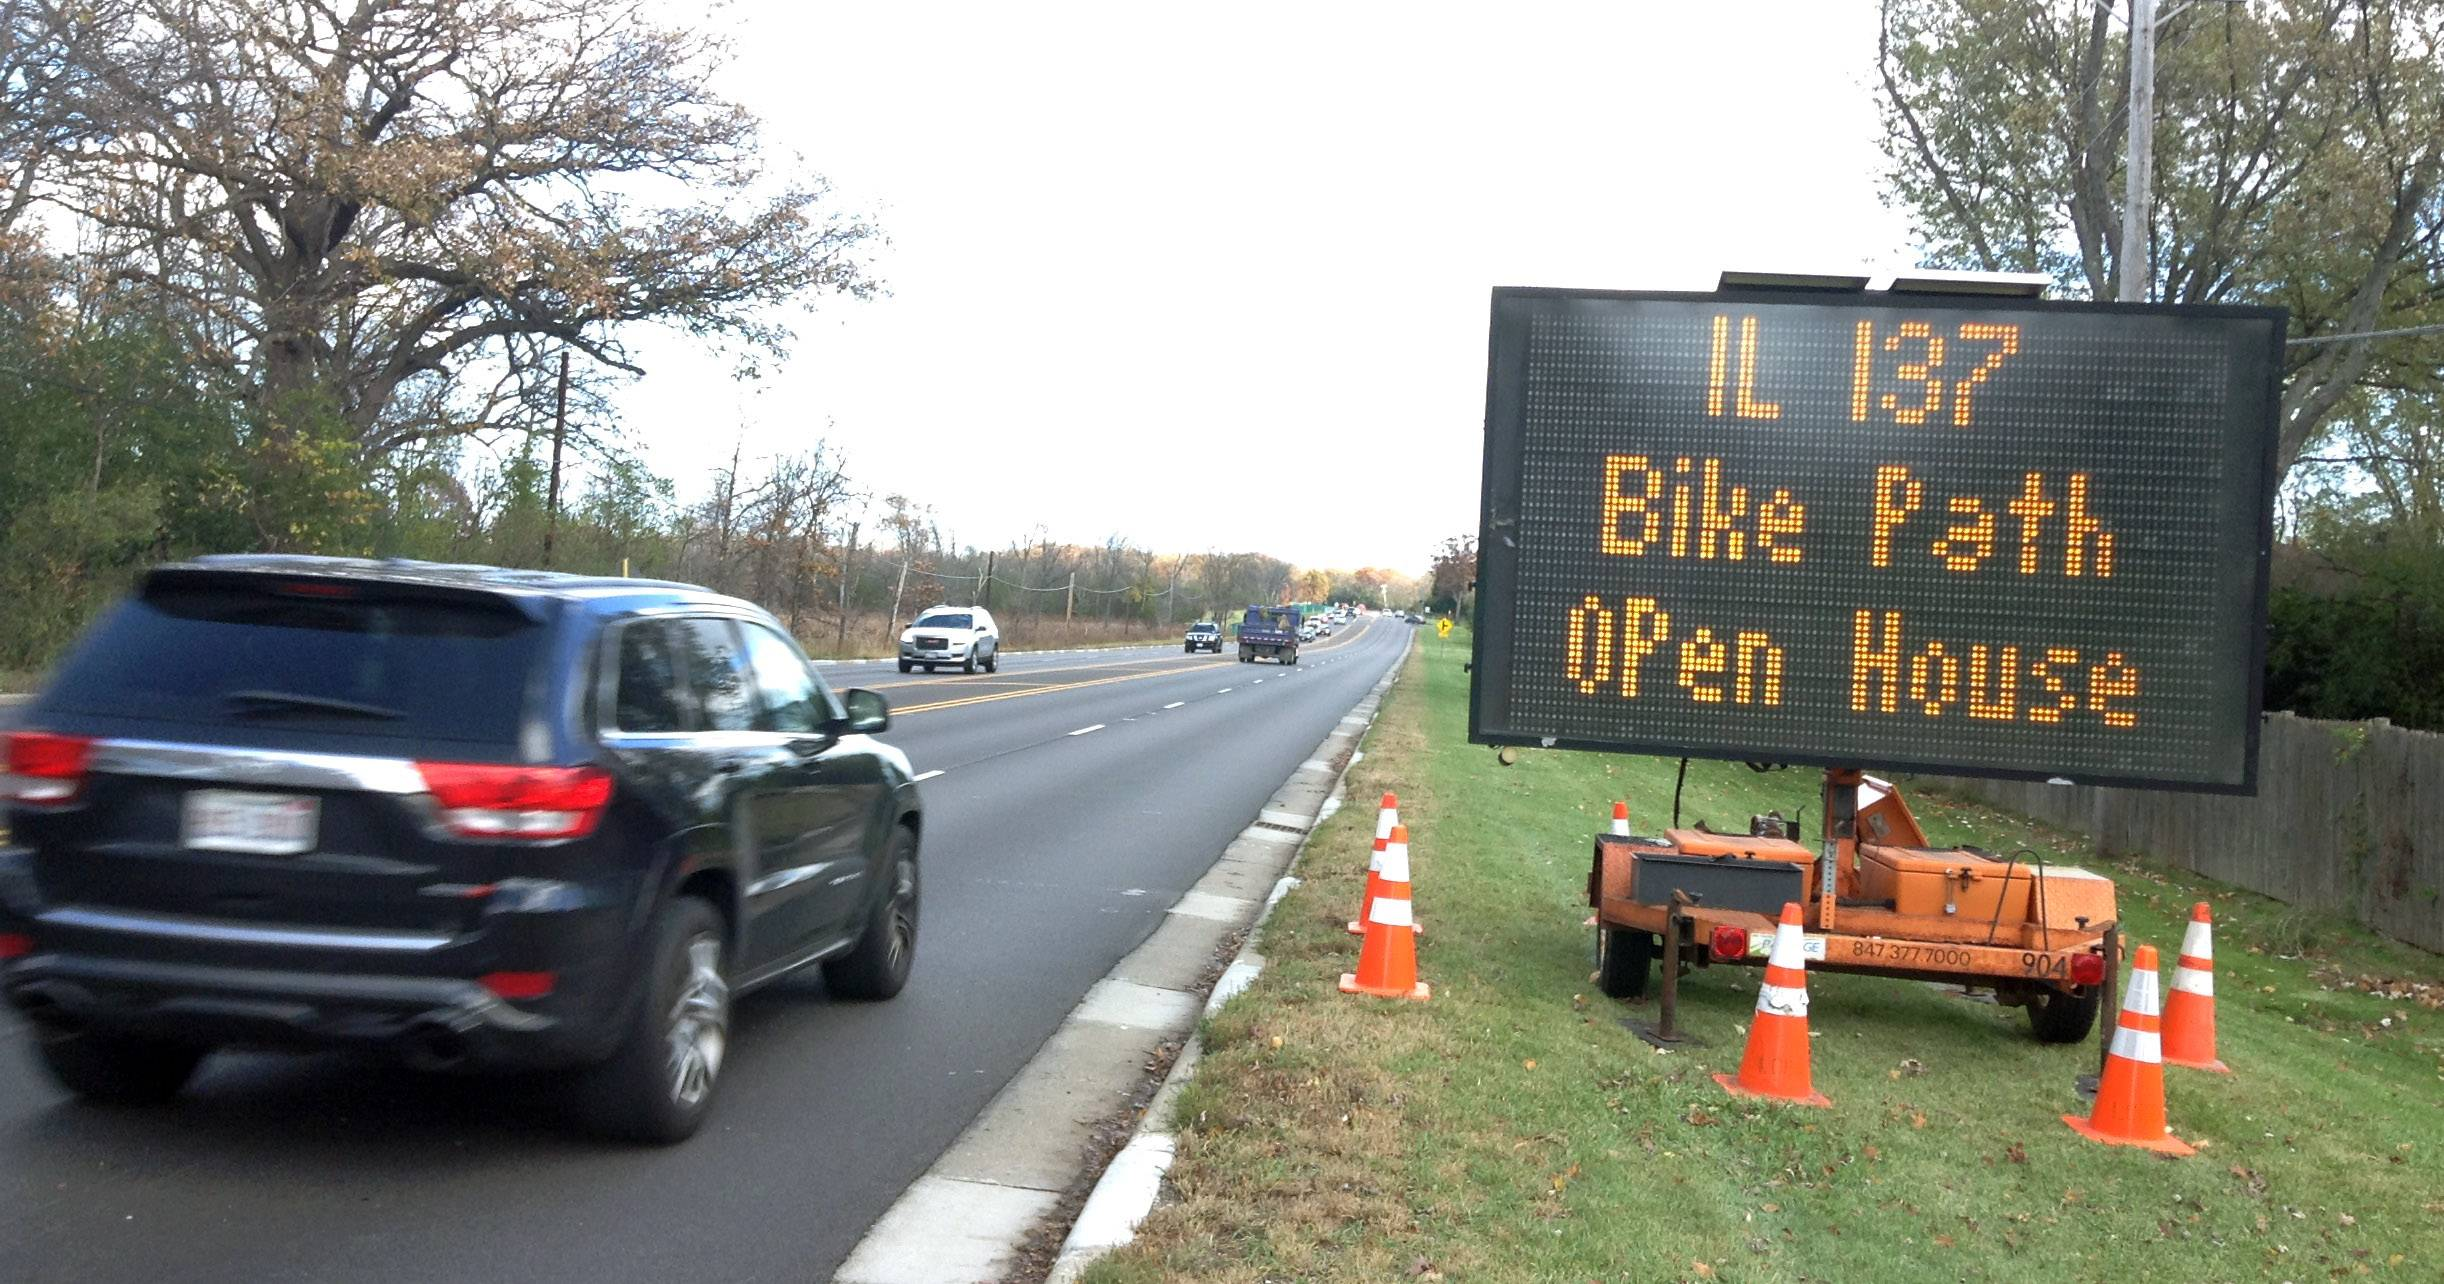 Route 137 regional trail link being studied